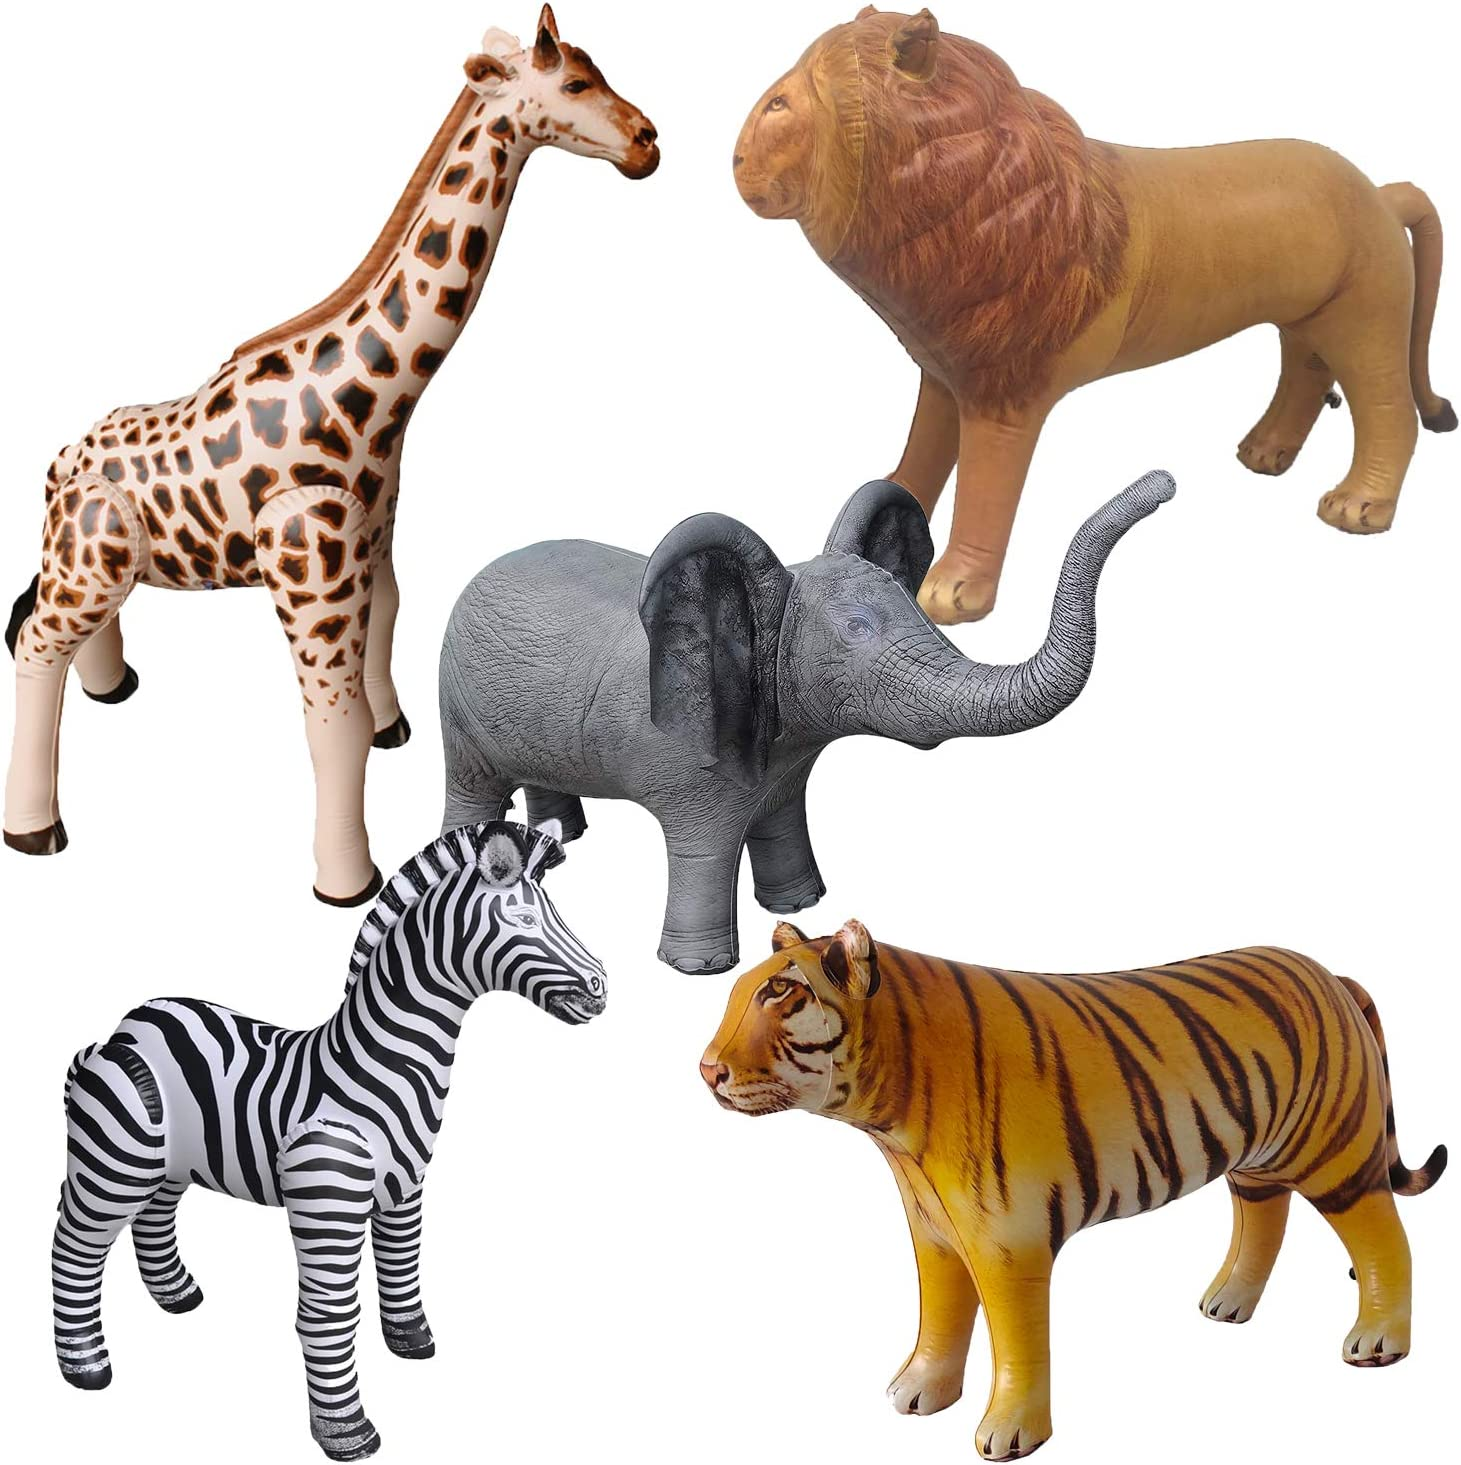 Airniture Jet Creations Safari Inflatable Plush Stuffed Animal 5 Pack Giraffe Zebra Elephant Lion Tiger for Pool, Party Decoration, Size up to 40 inch, AIR-GZELT5, 36, Multi